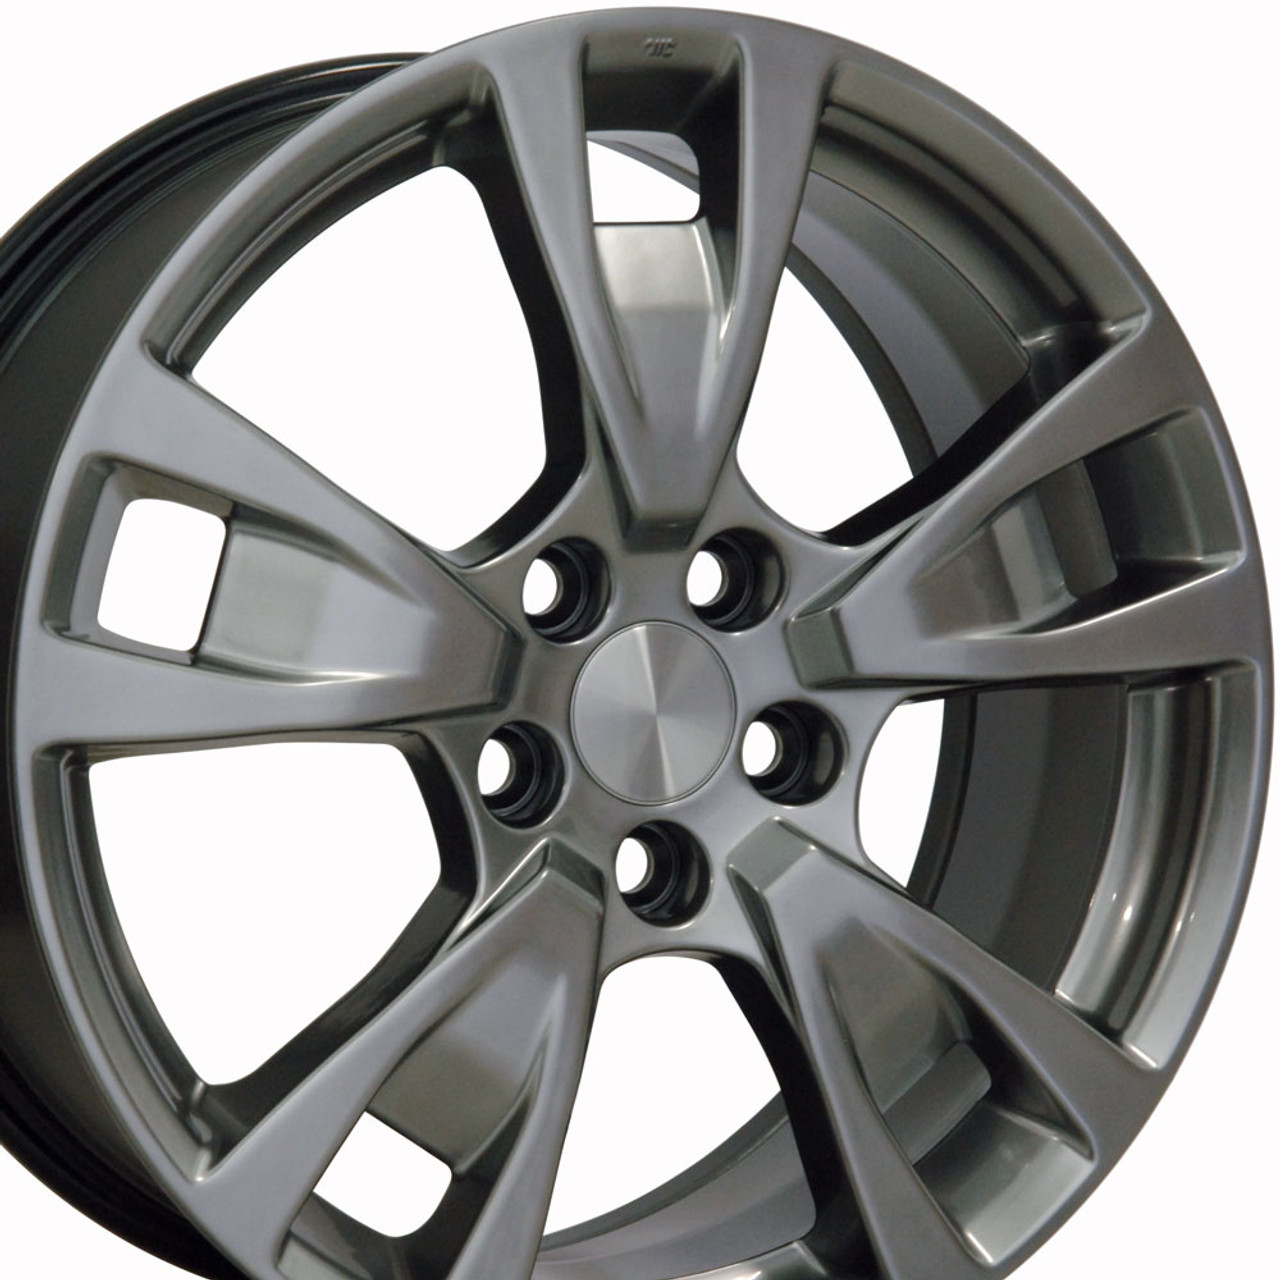 Fits Acura TL Acura RL Silver Wheels Set Of X Rims Stock - Rims for acura tl